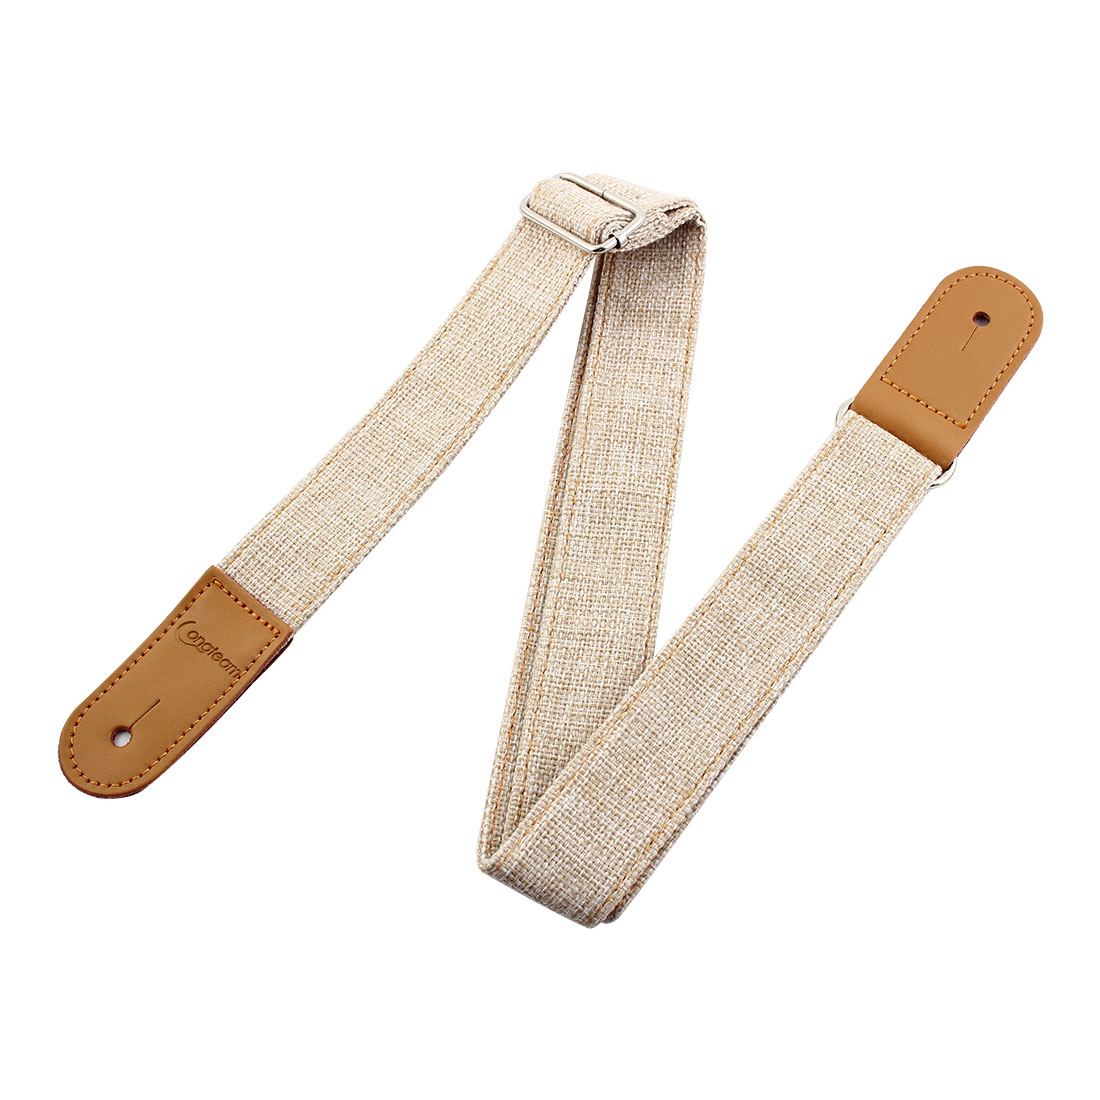 Faux Leather End Adjustable Ukulele Strap Belt